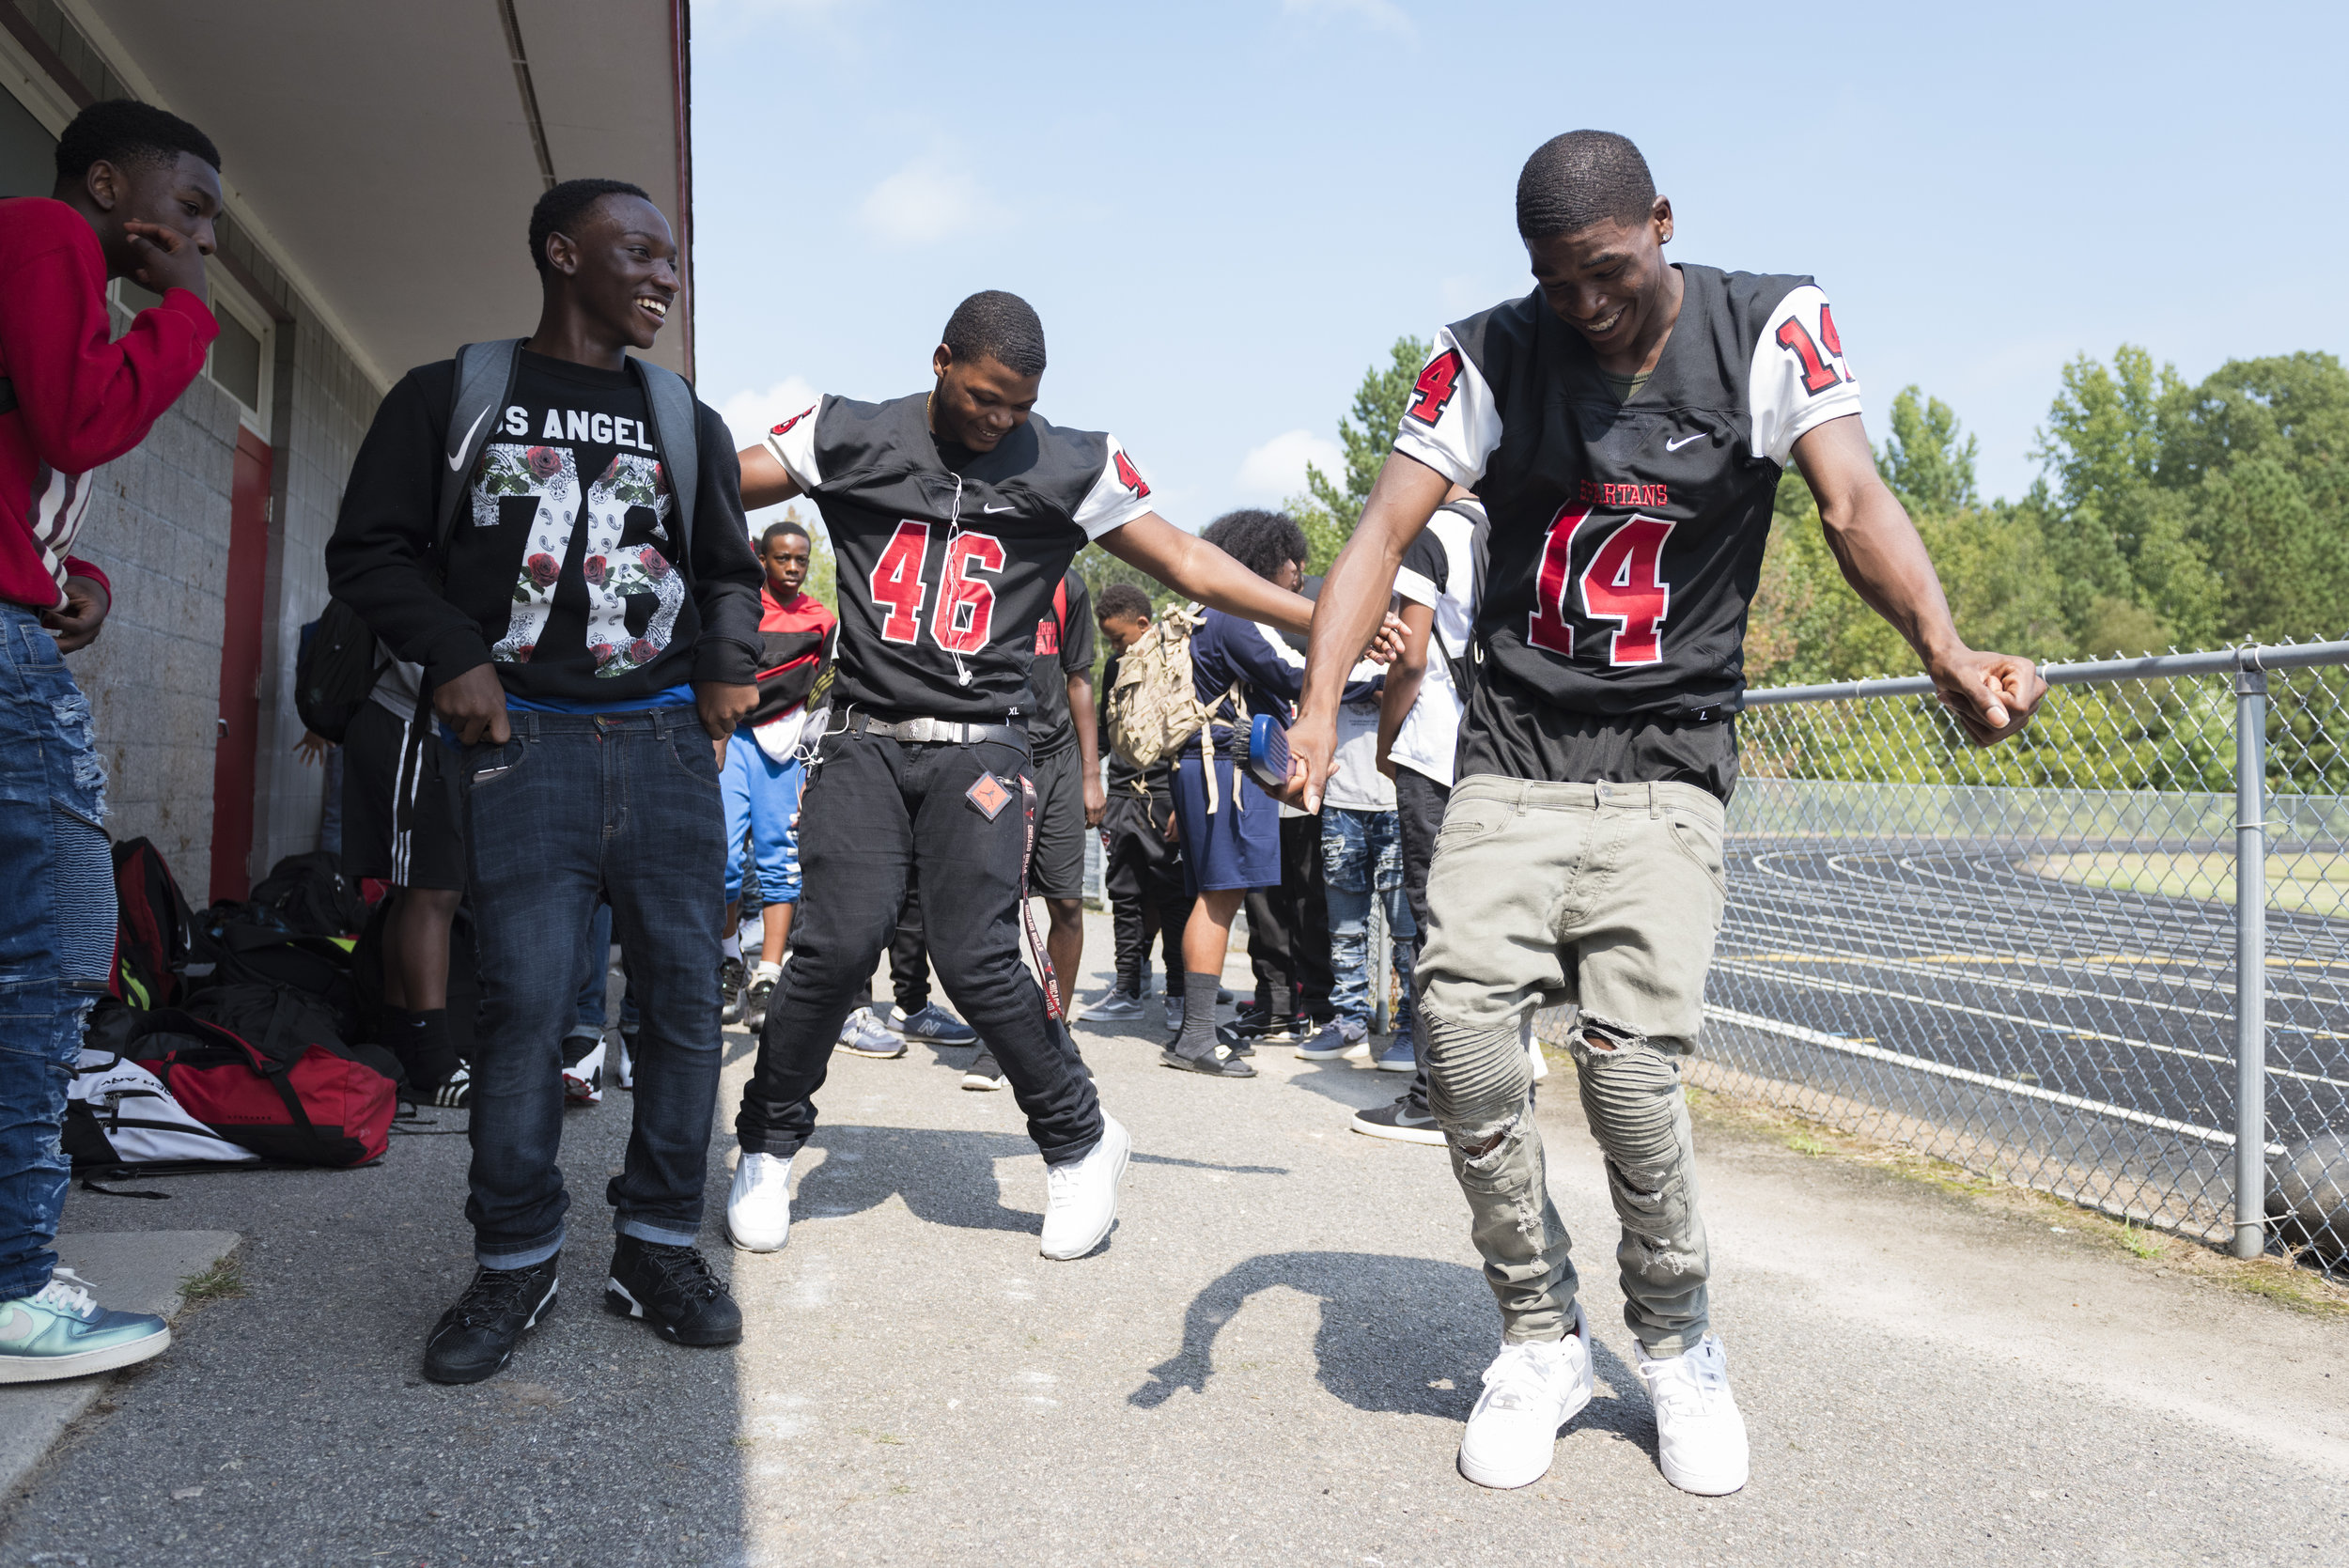 Southern Durham players Lavar Houze (46) and Cinsere Clark (14) dance during the team's homecoming pep-rally at school.